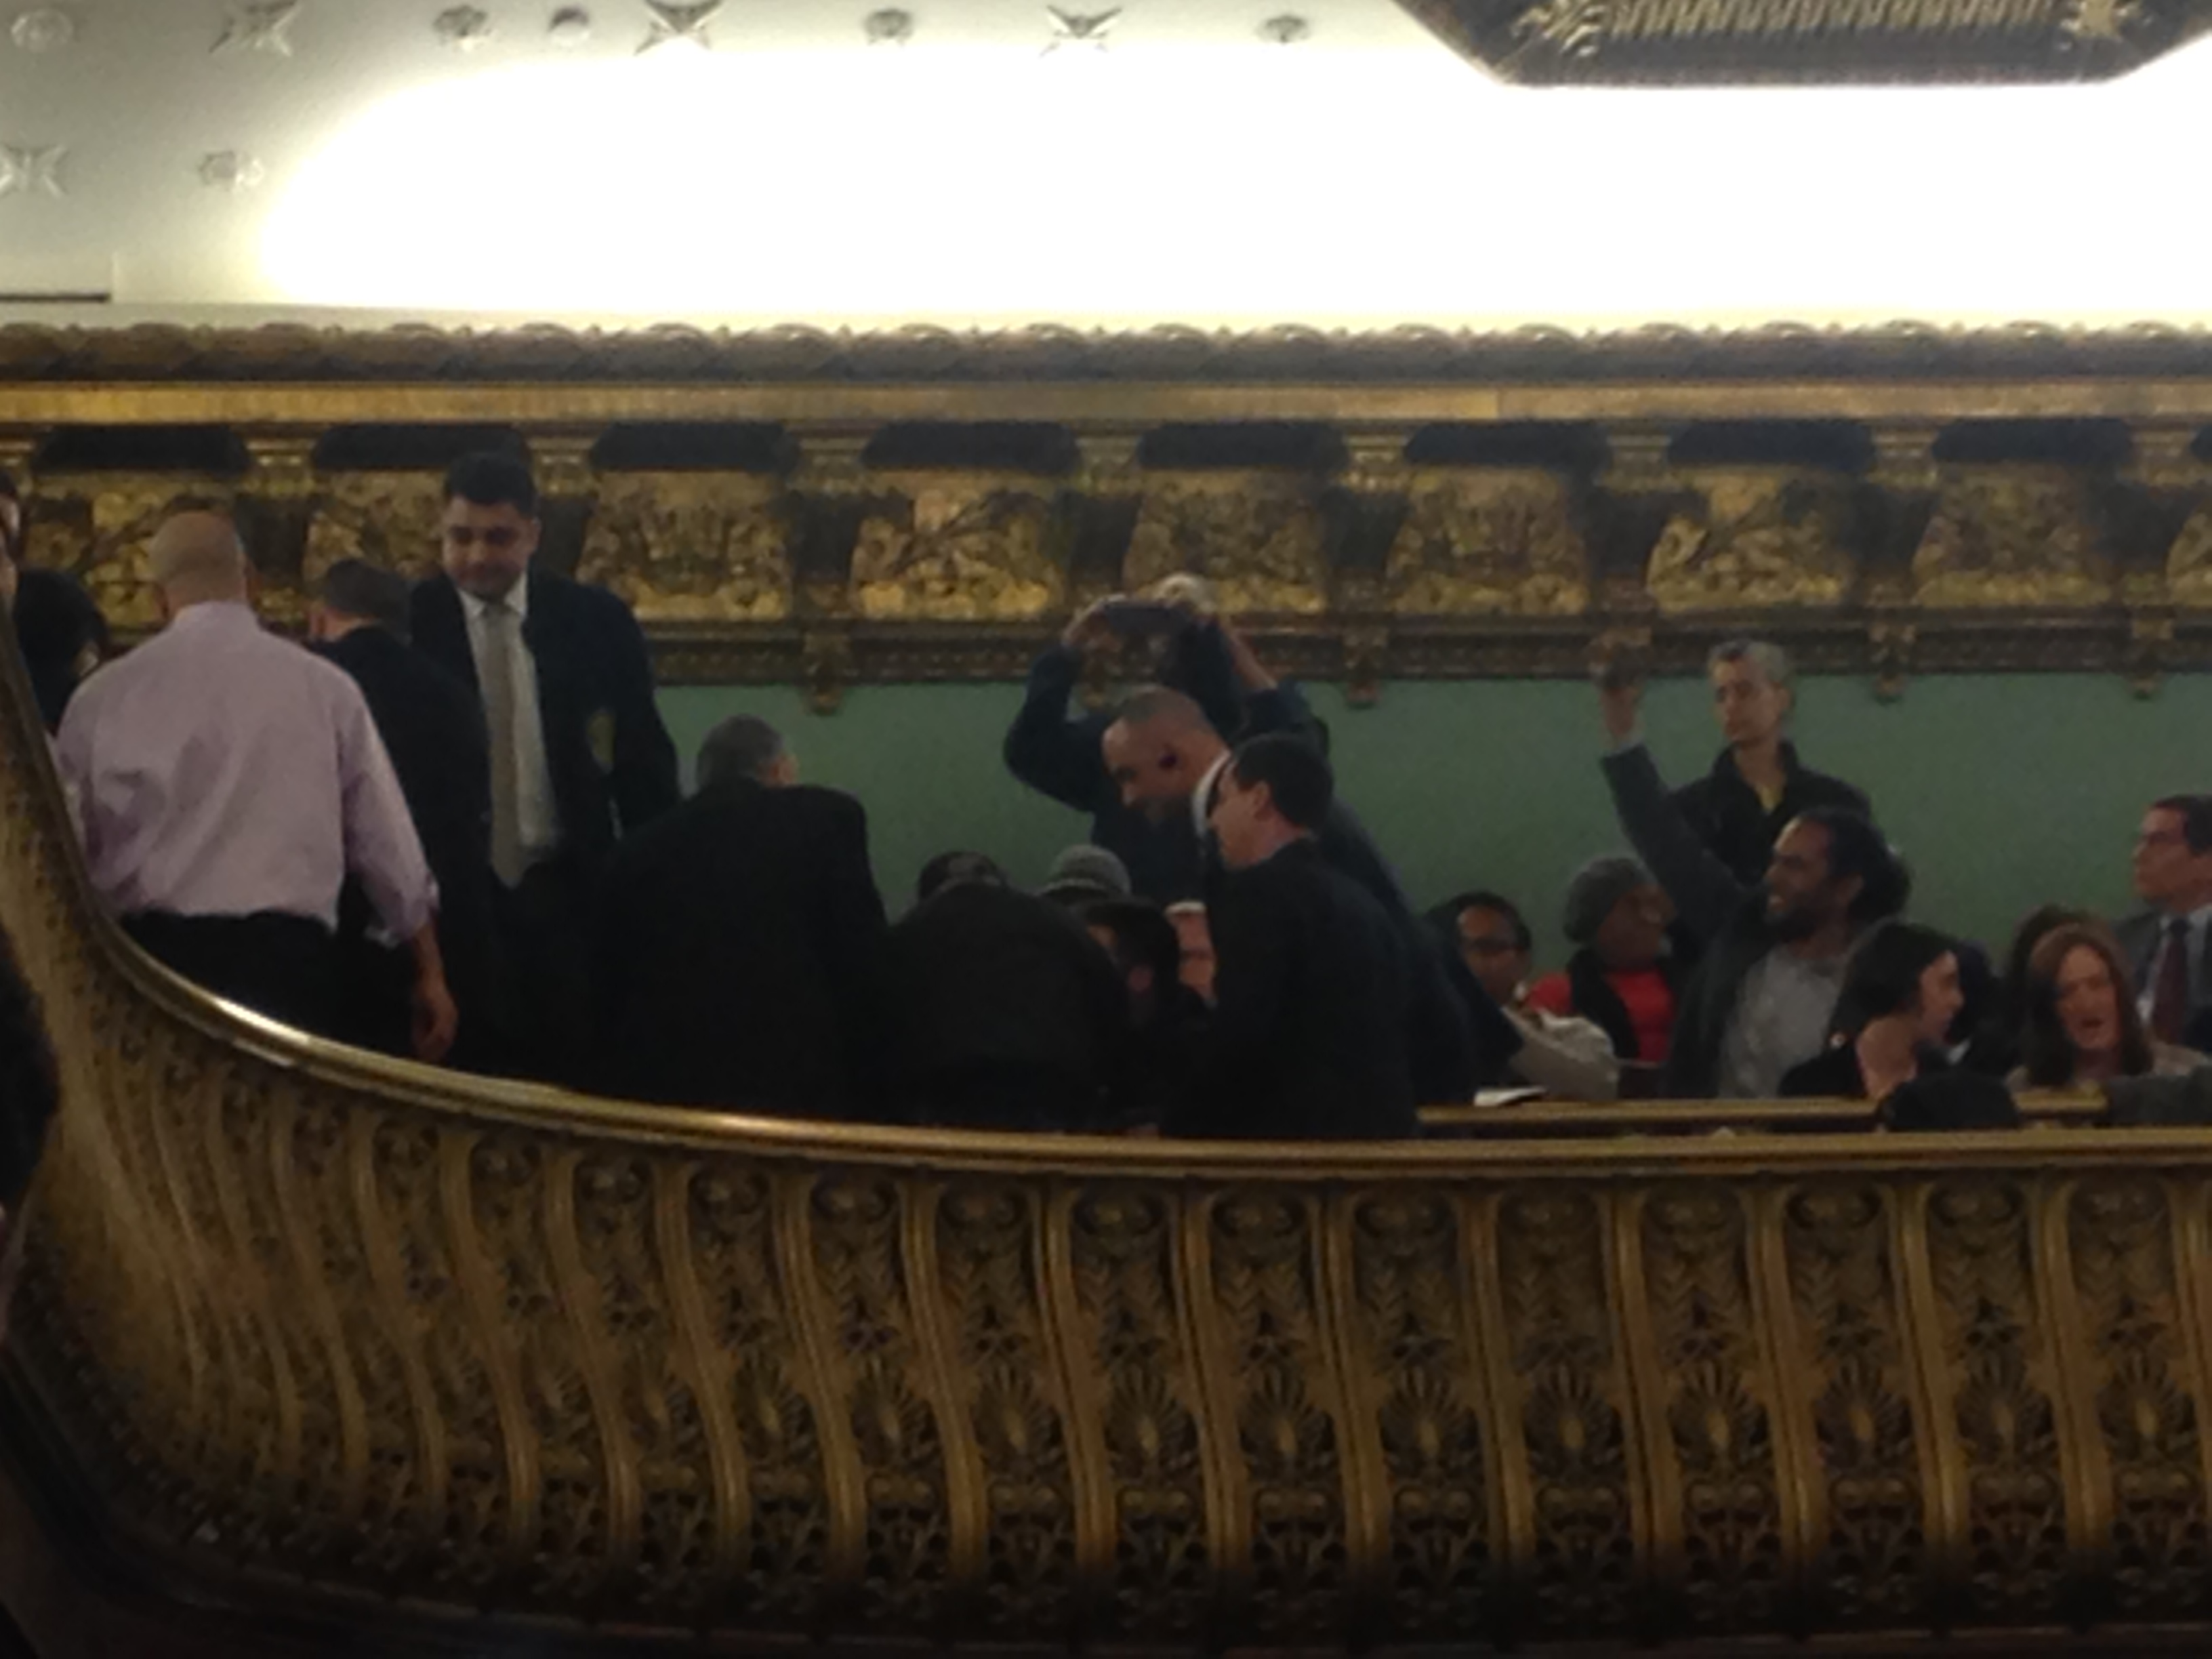 Council security and police try to pry protesters from their seats in the balcony.